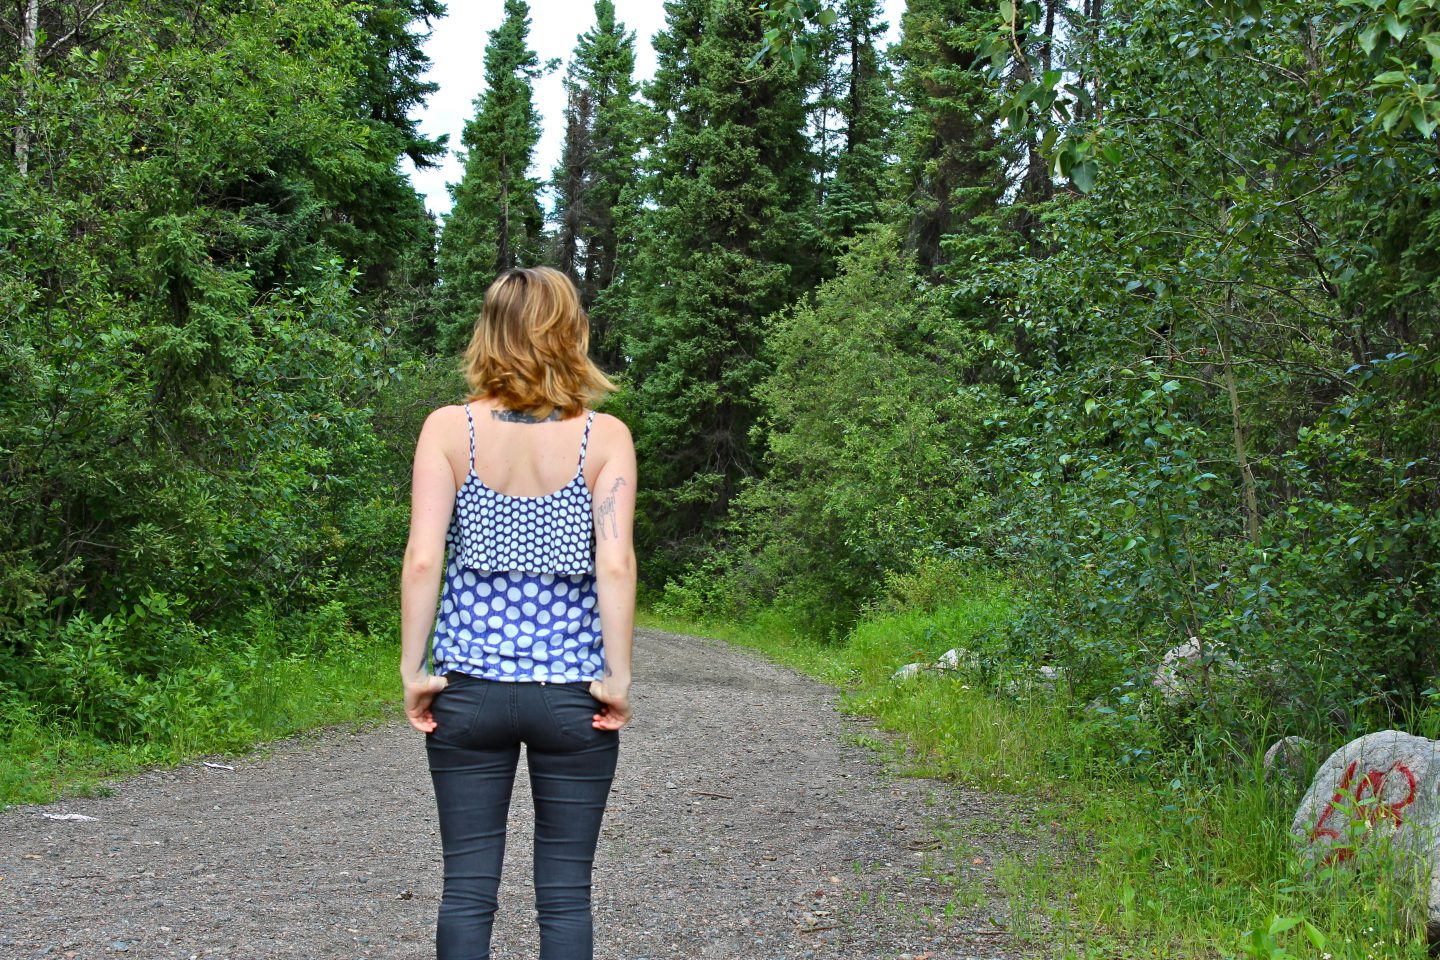 13 things I would tell my younger self